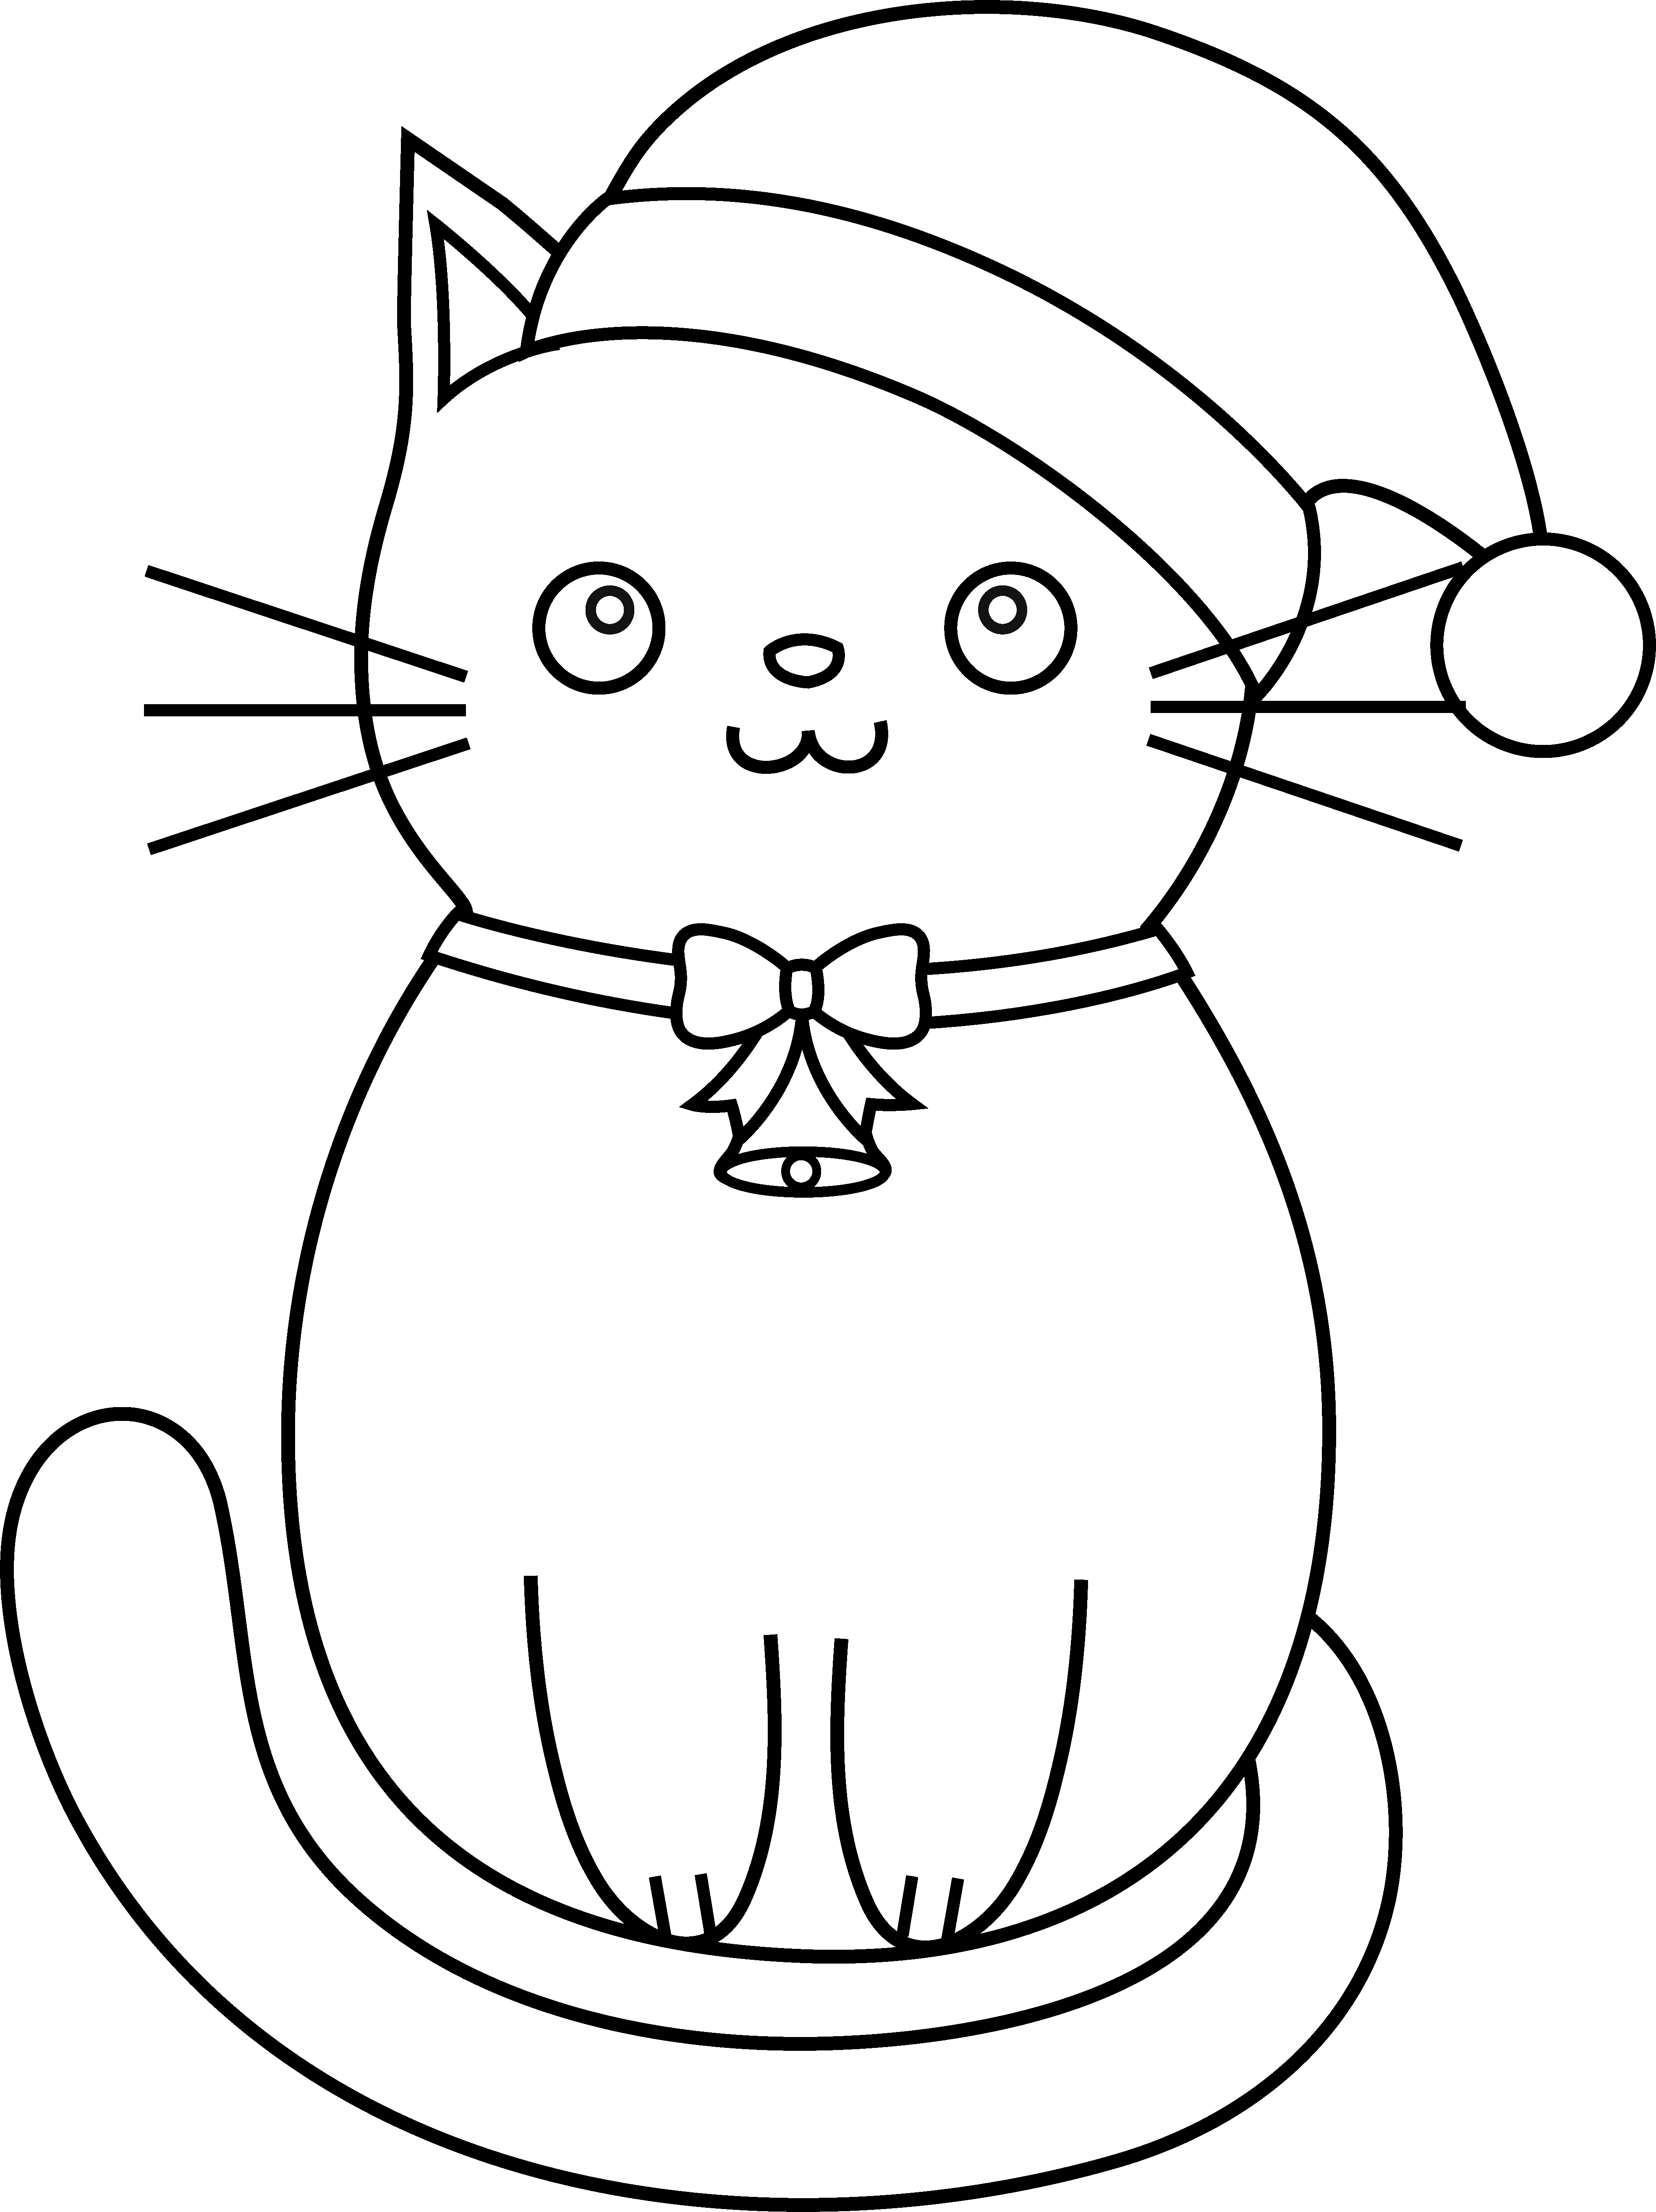 printable cat pictures to color free printable cat coloring pages for kids printable to cat color pictures